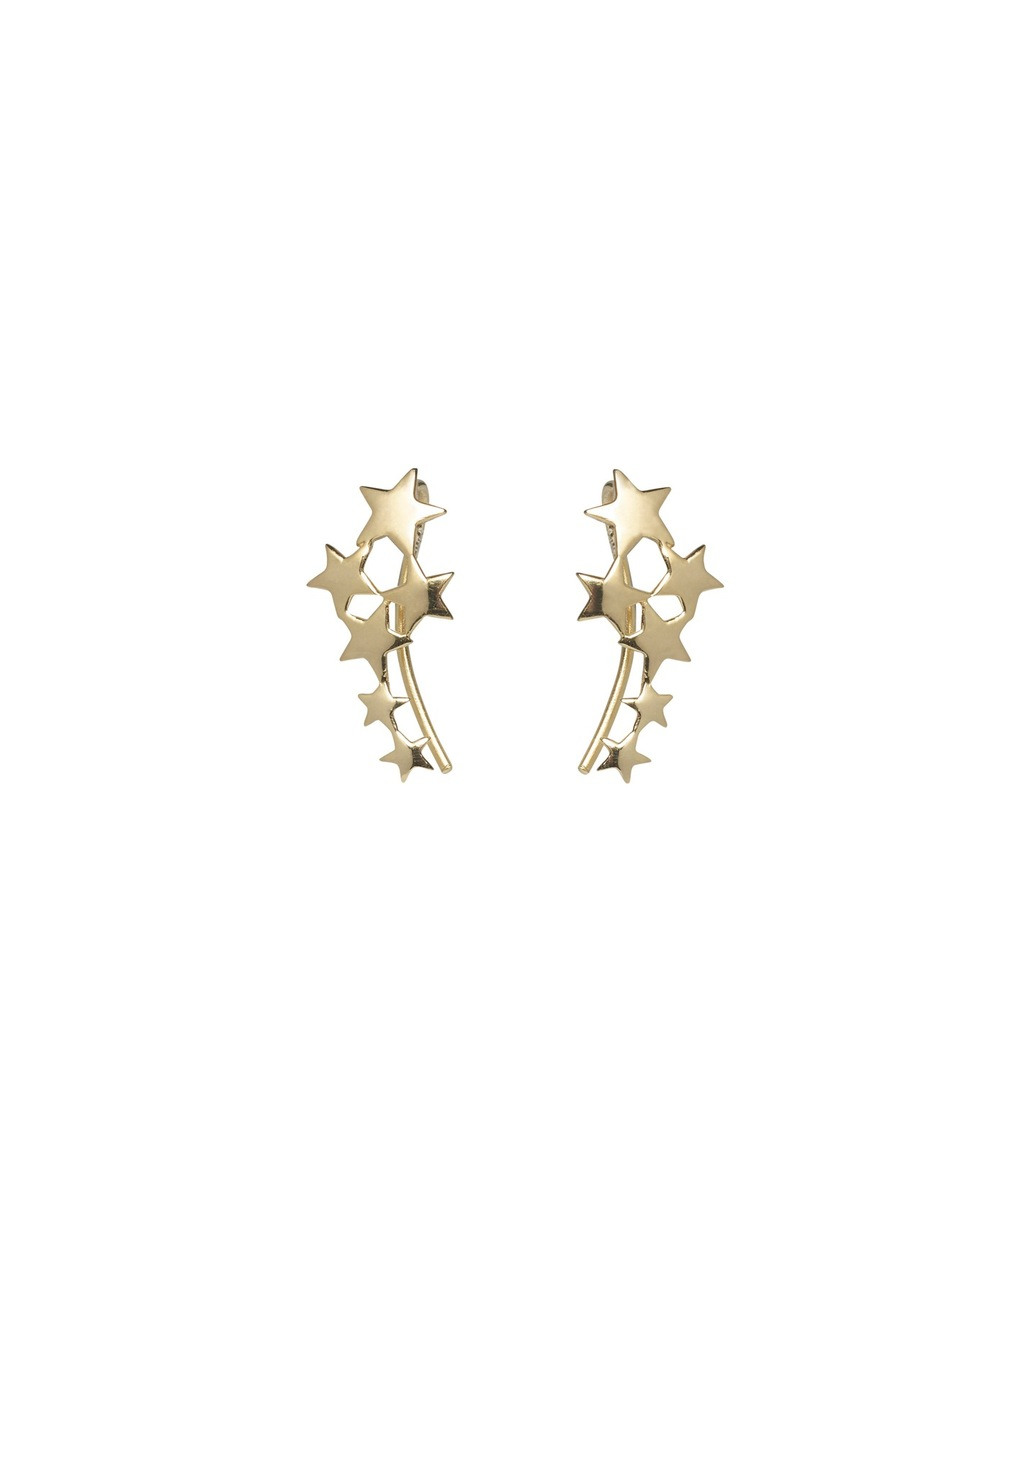 Scatter Star Ear Hooks - predominant colour: gold; occasions: casual, creative work; length: long; size: standard; material: chain/metal; fastening: pierced; finish: metallic; style: ear cuffs; season: a/w 2016